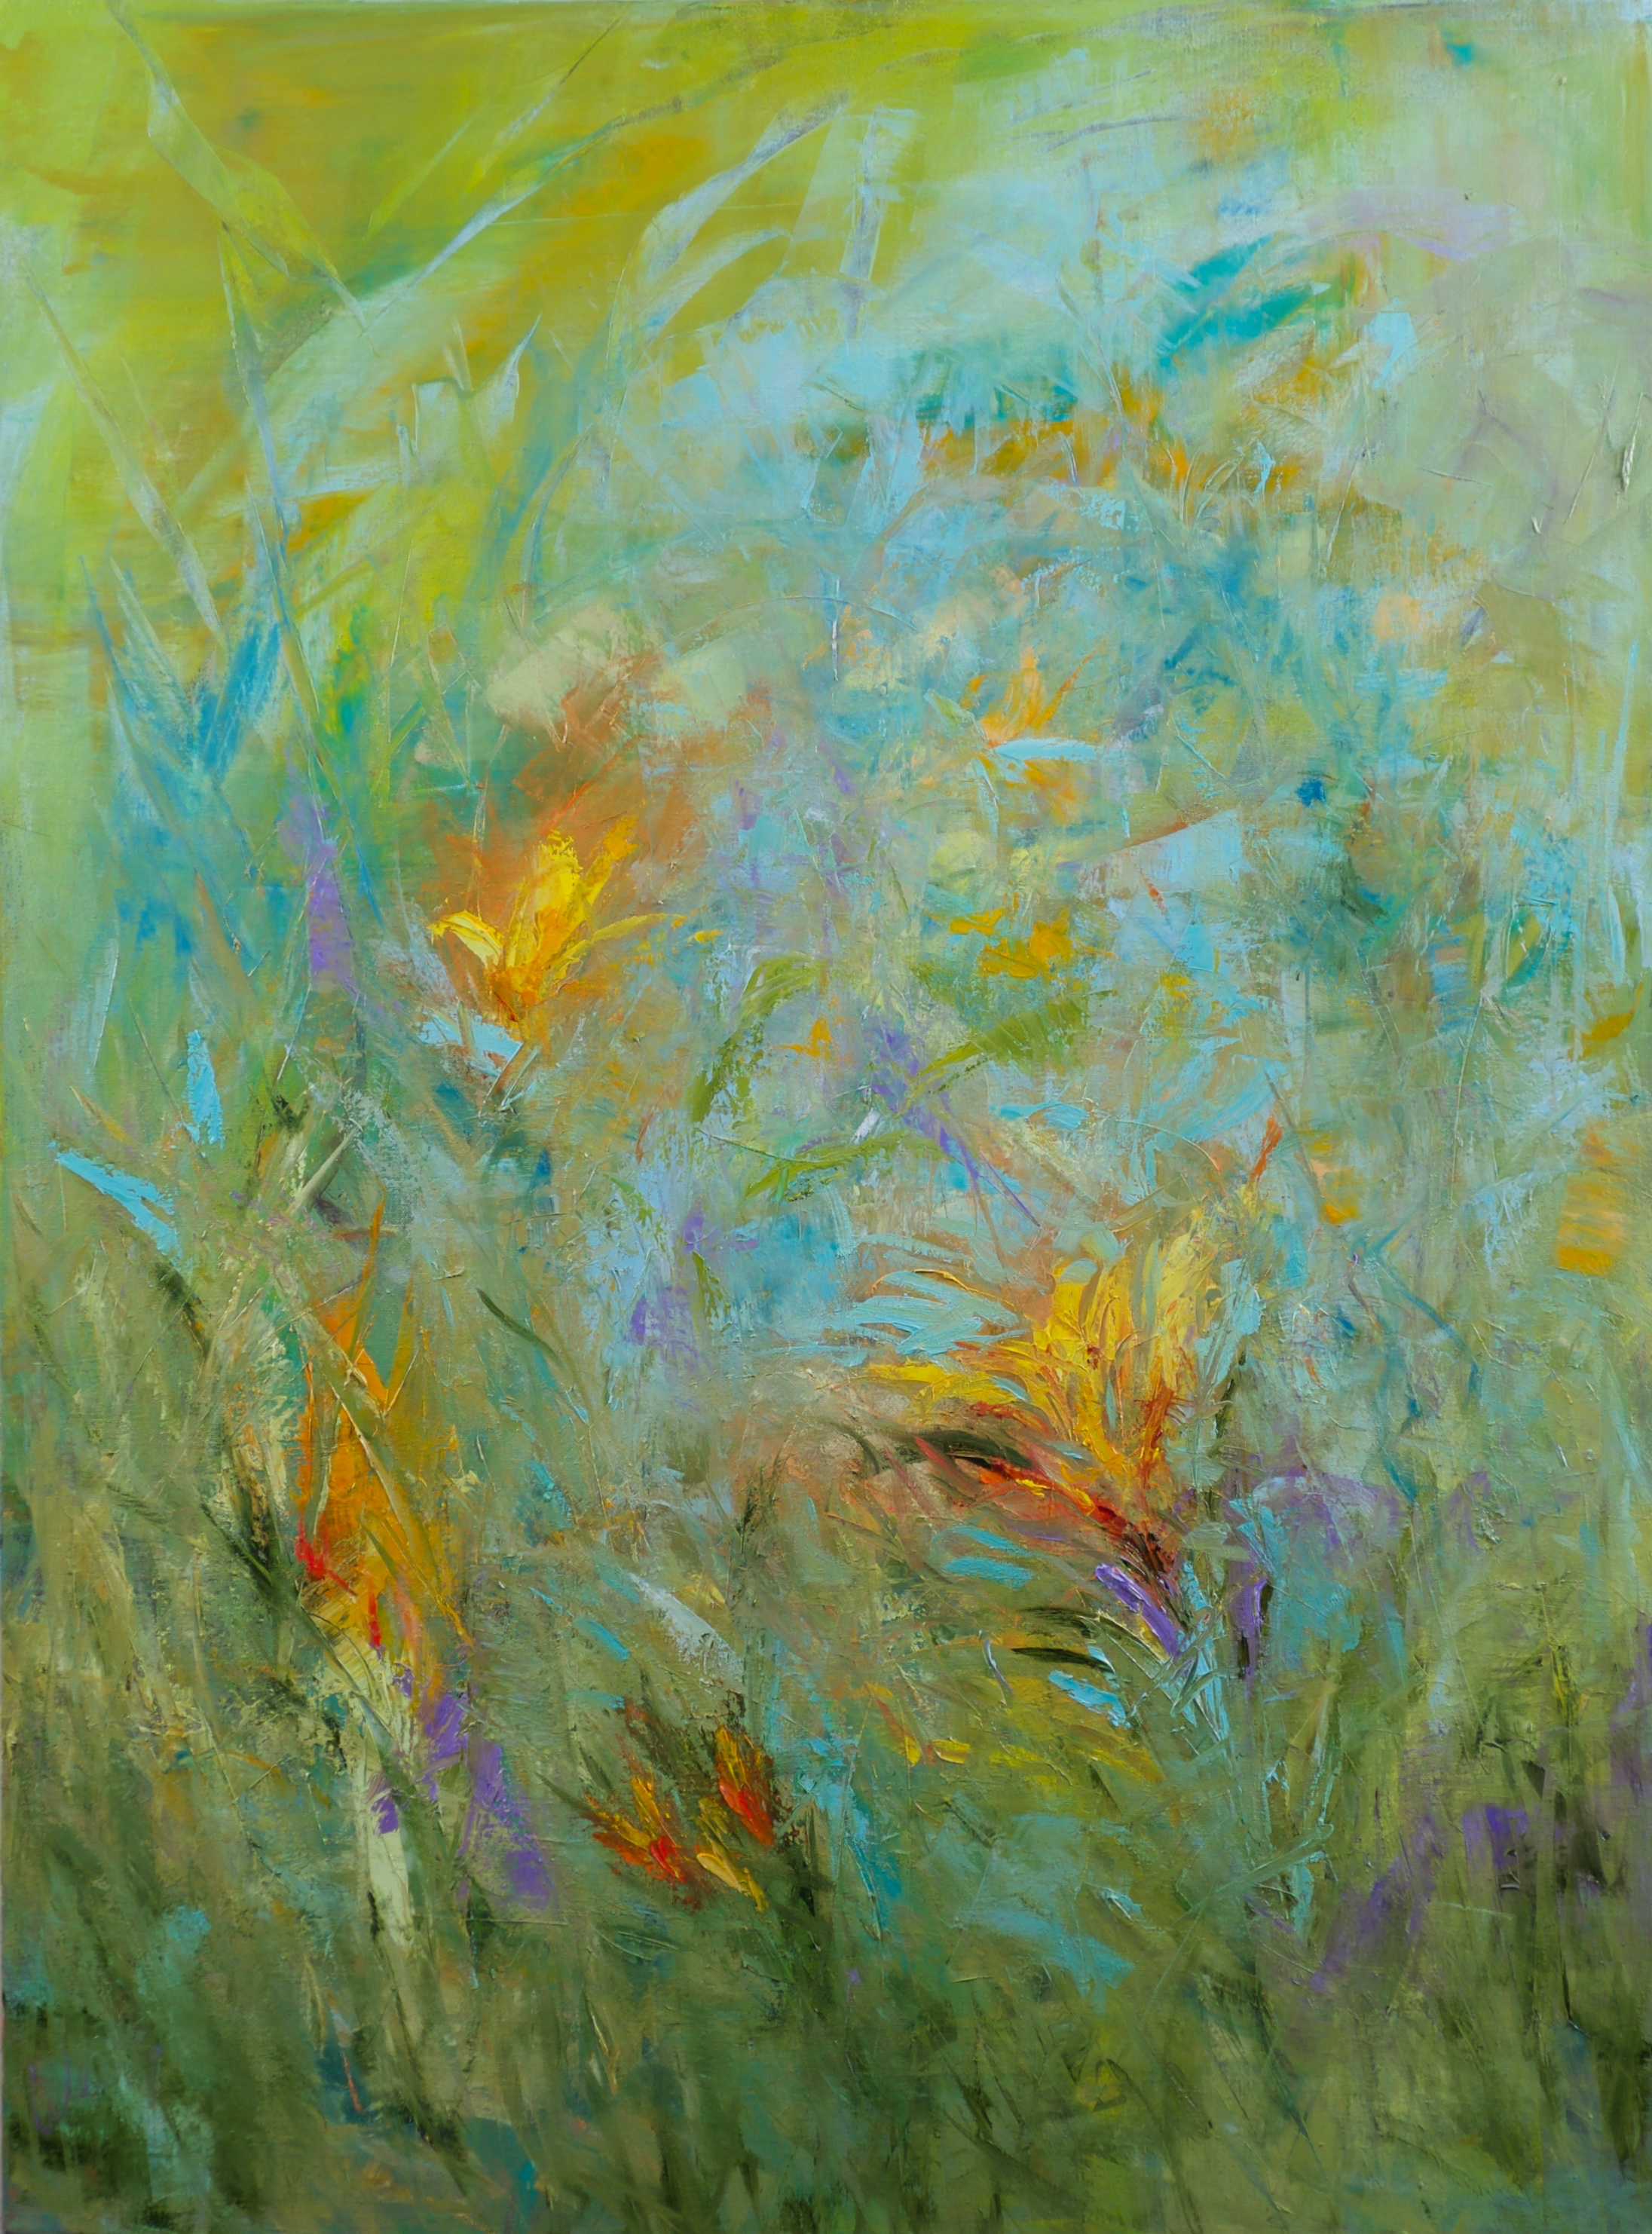 Dreaming of Spring - 40 x 30 inch